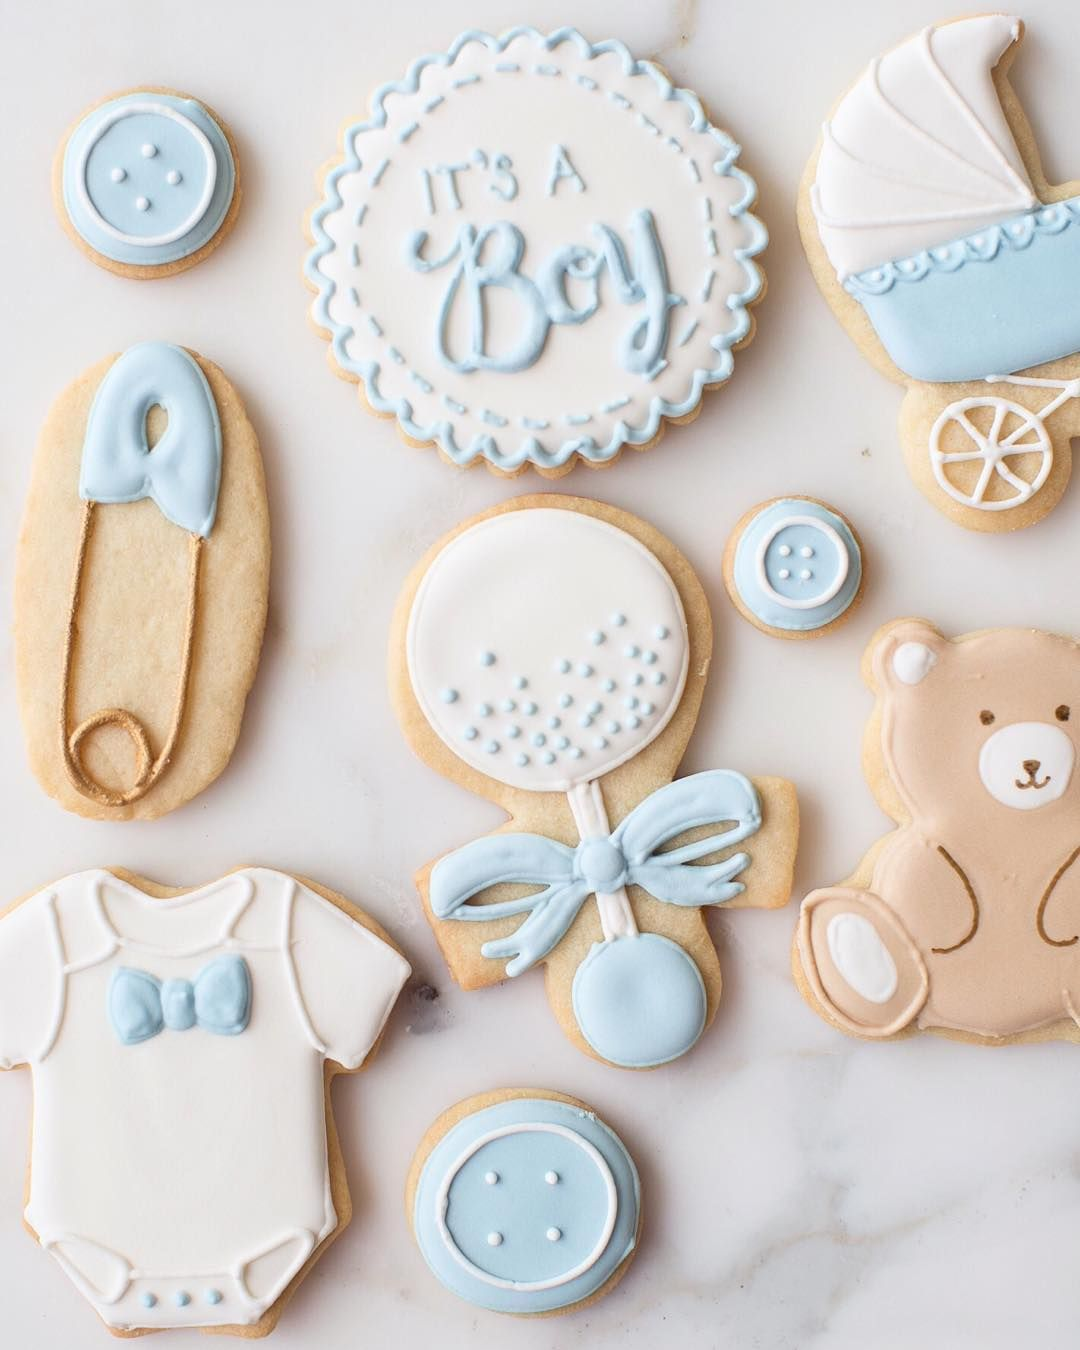 Baby Boy Baby Shower or New Baby Gift Cookies | Shop Sweet Kiera ...